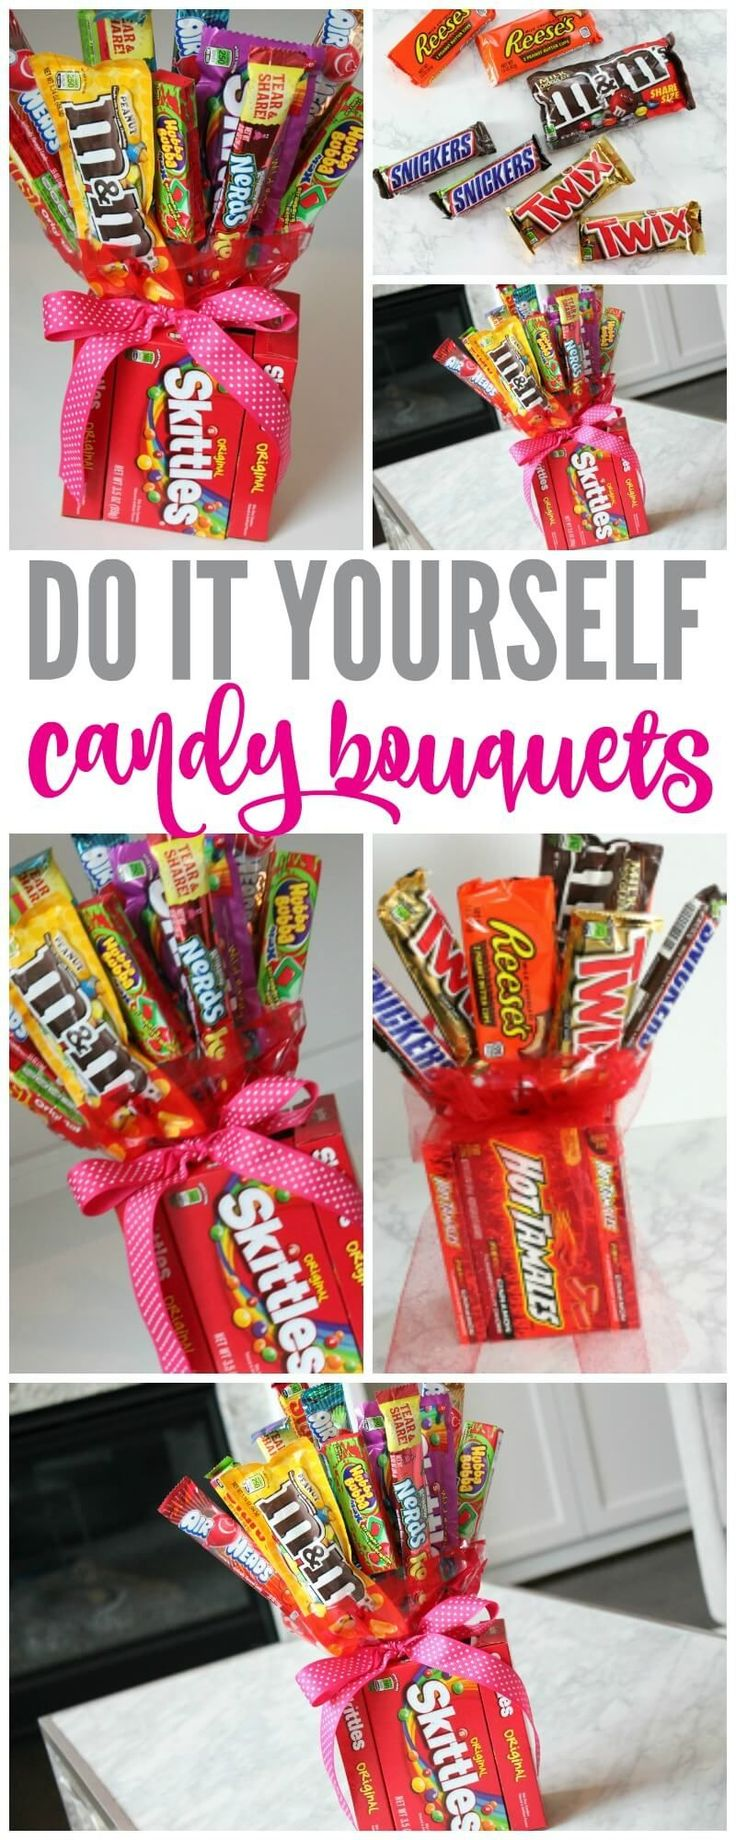 Make Your Own Candy Bouquets for Valentines Day, Fathers Day, Mothers Day, Birthday Parties and more! The Perfect Gift for the person that has everything!